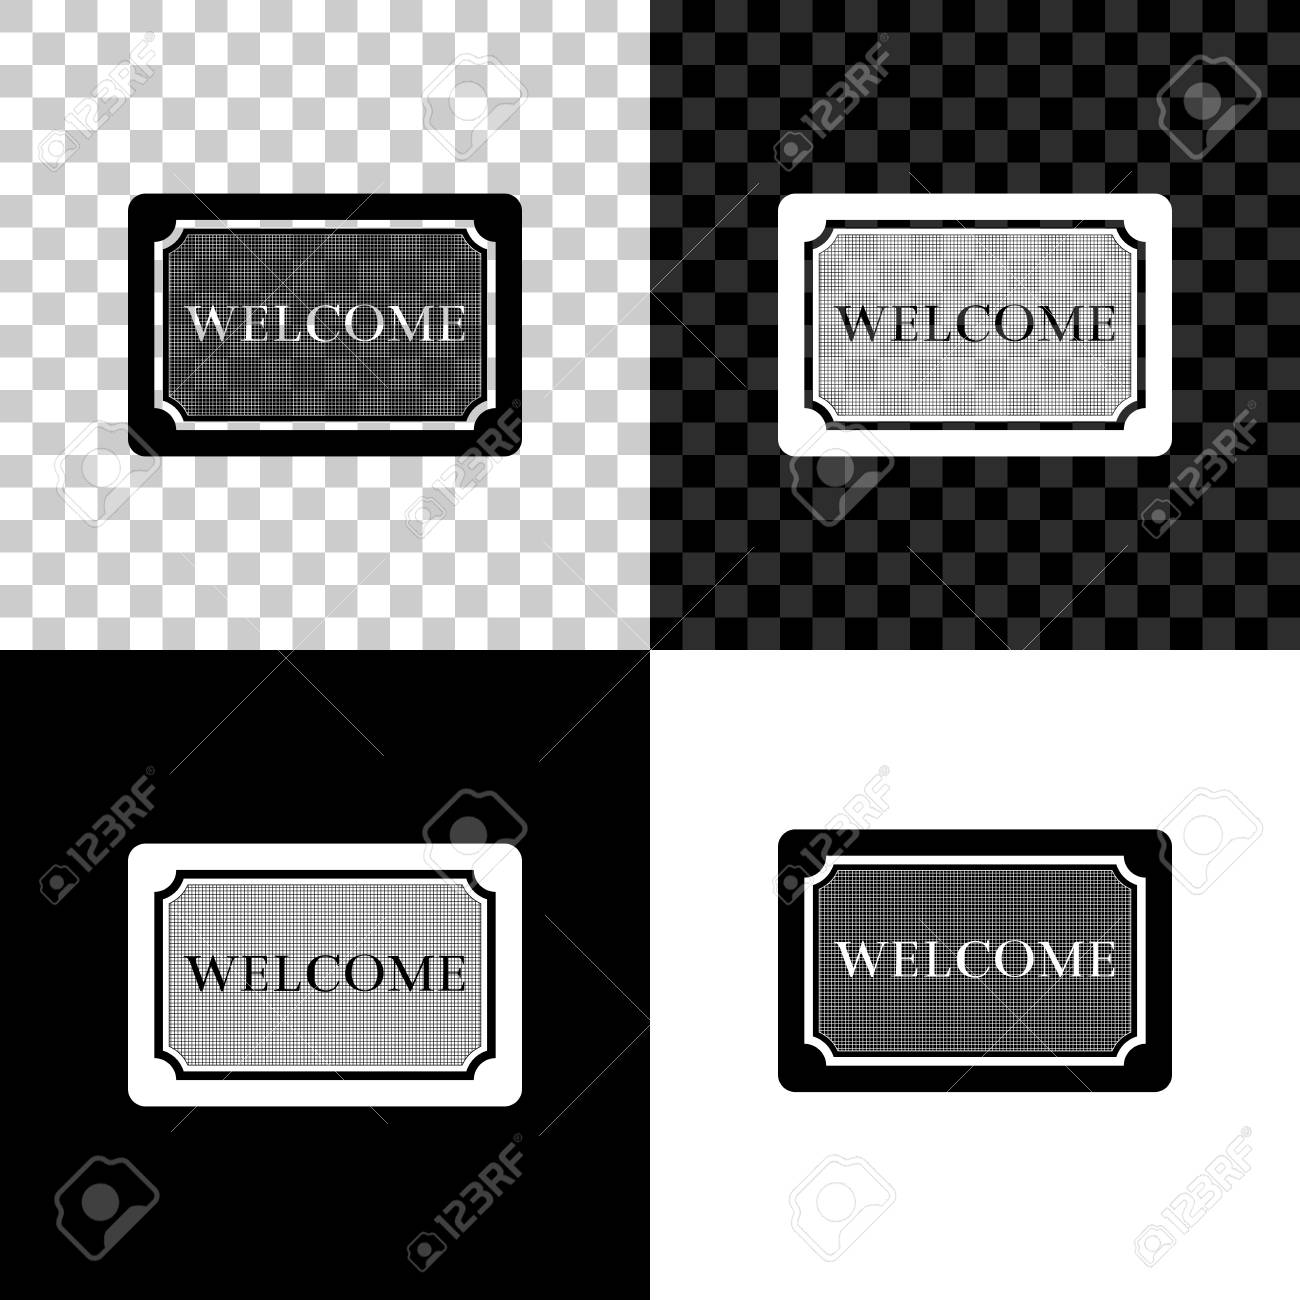 Doormat with the text Welcome icon isolated on black, white and